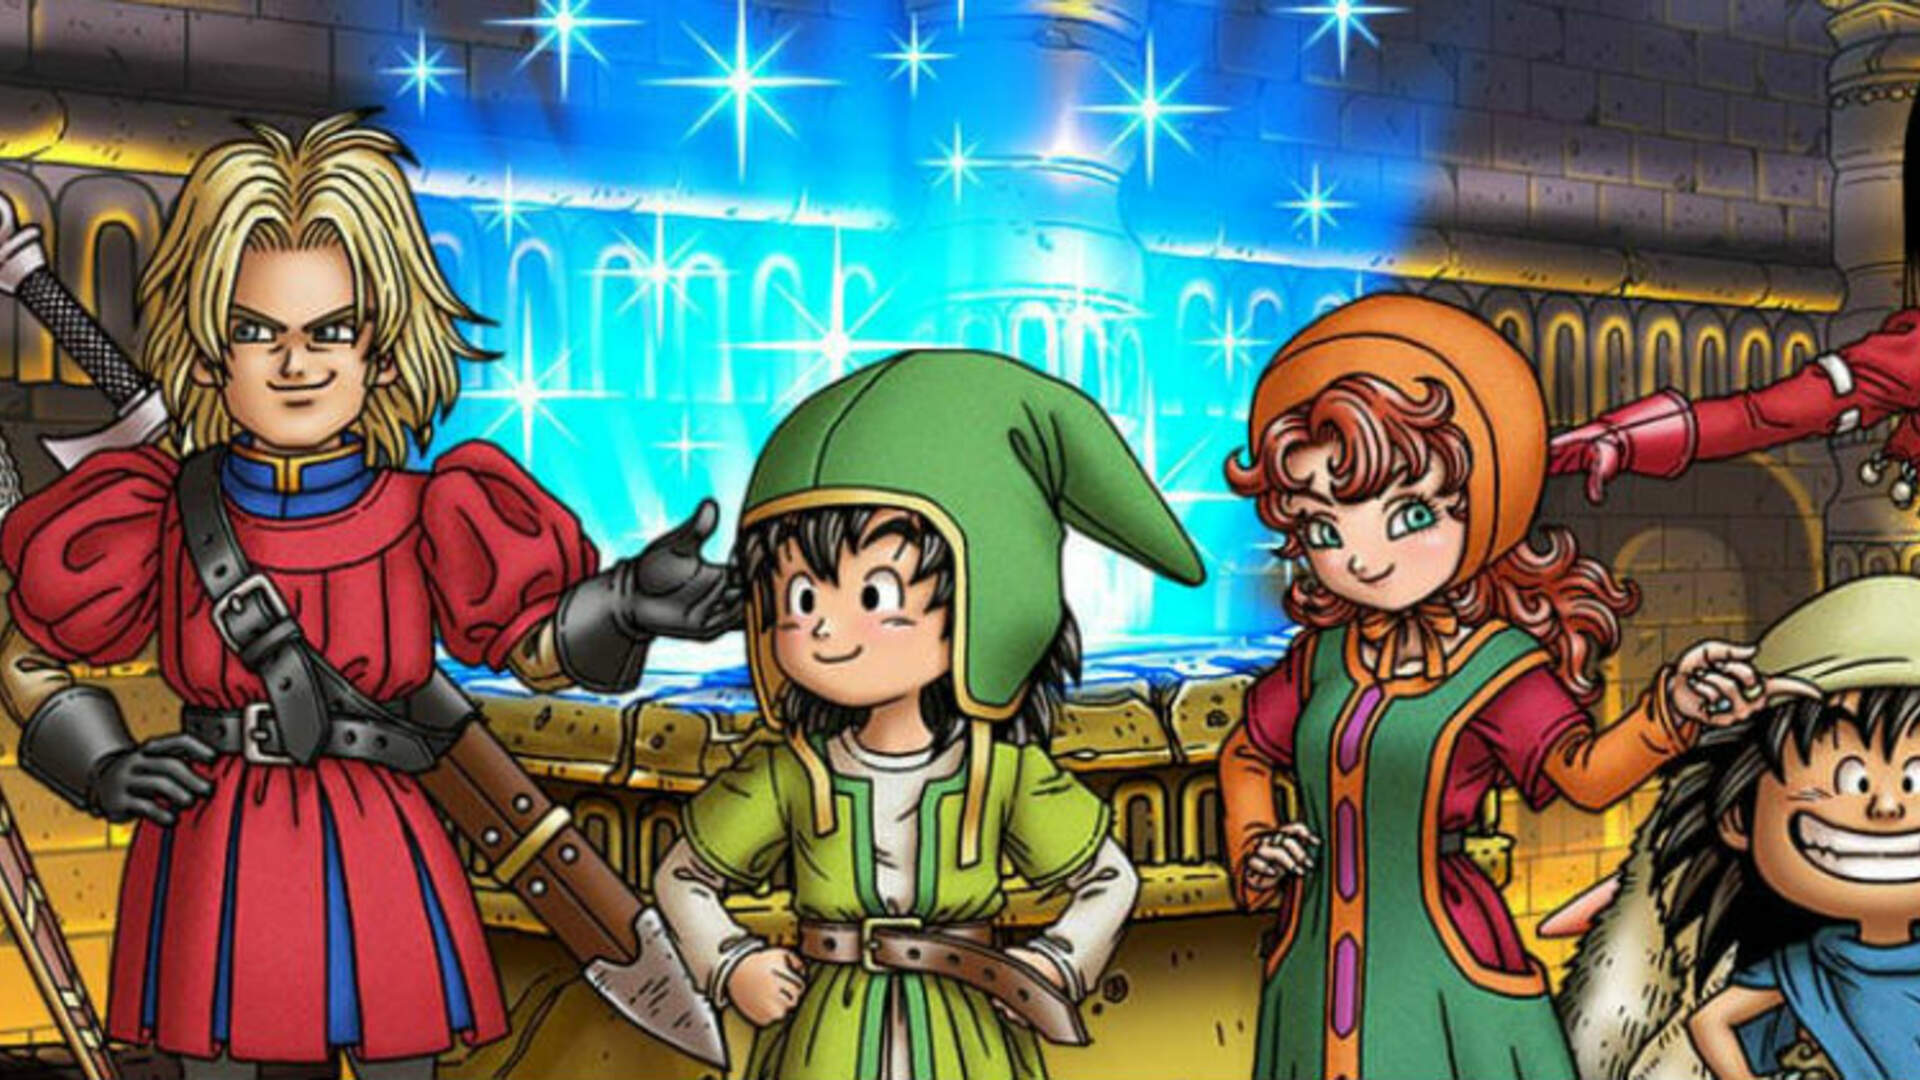 Dragon Quest 7 3DS Mini Medals Guide: Where to Find the Mini Medals